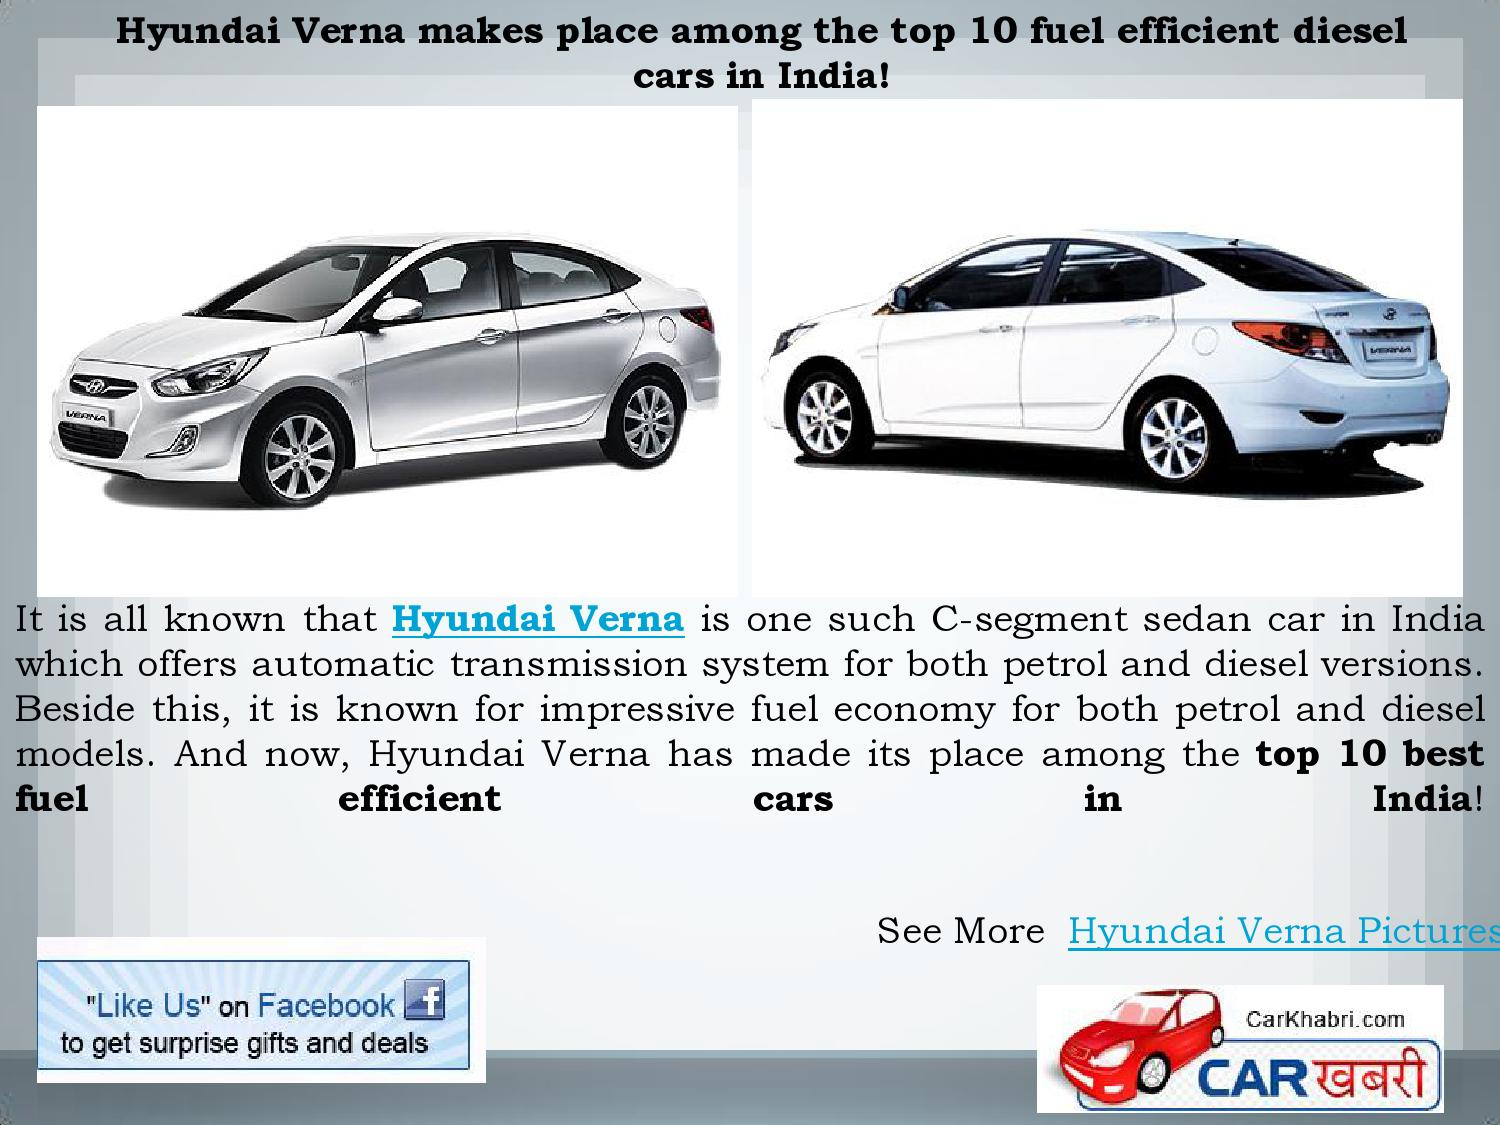 Hyundai Verna Makes Place Among The Top 10 Fuel Efficient Diesel Cars In India By Sanjeev Sharma Issuu